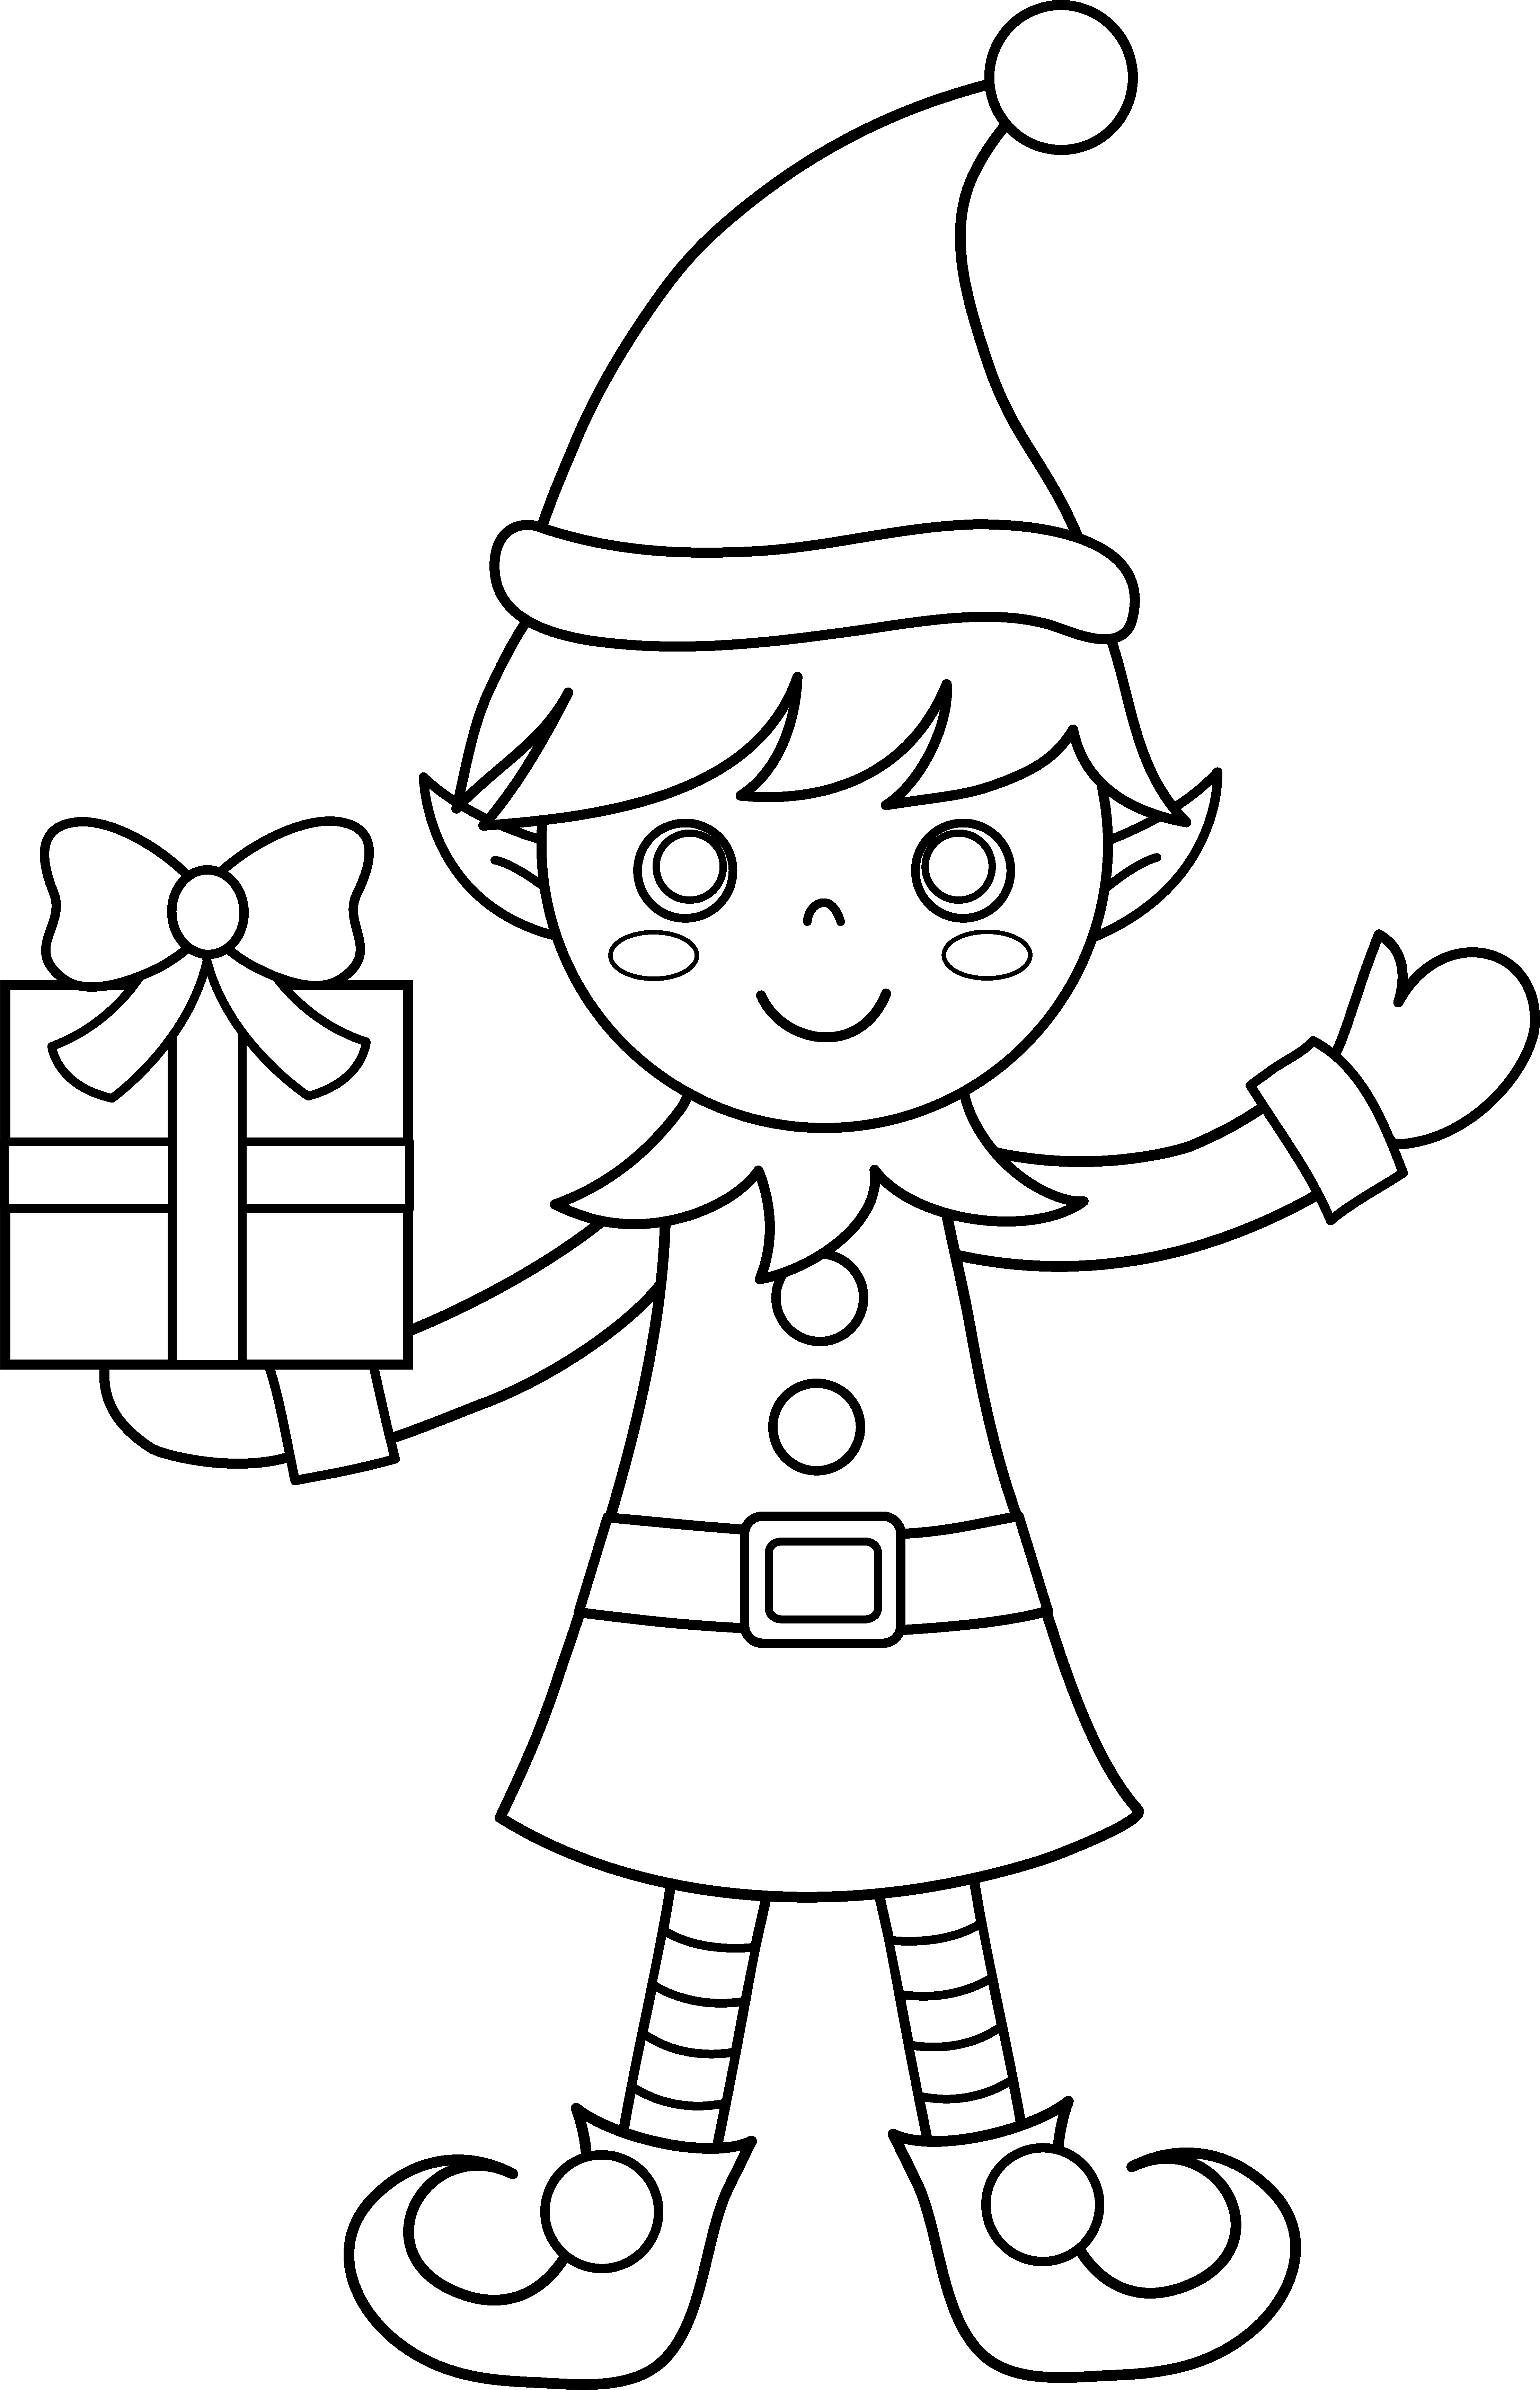 elf christmas coloring pages elf coloring pages getcoloringpagescom pages coloring christmas elf